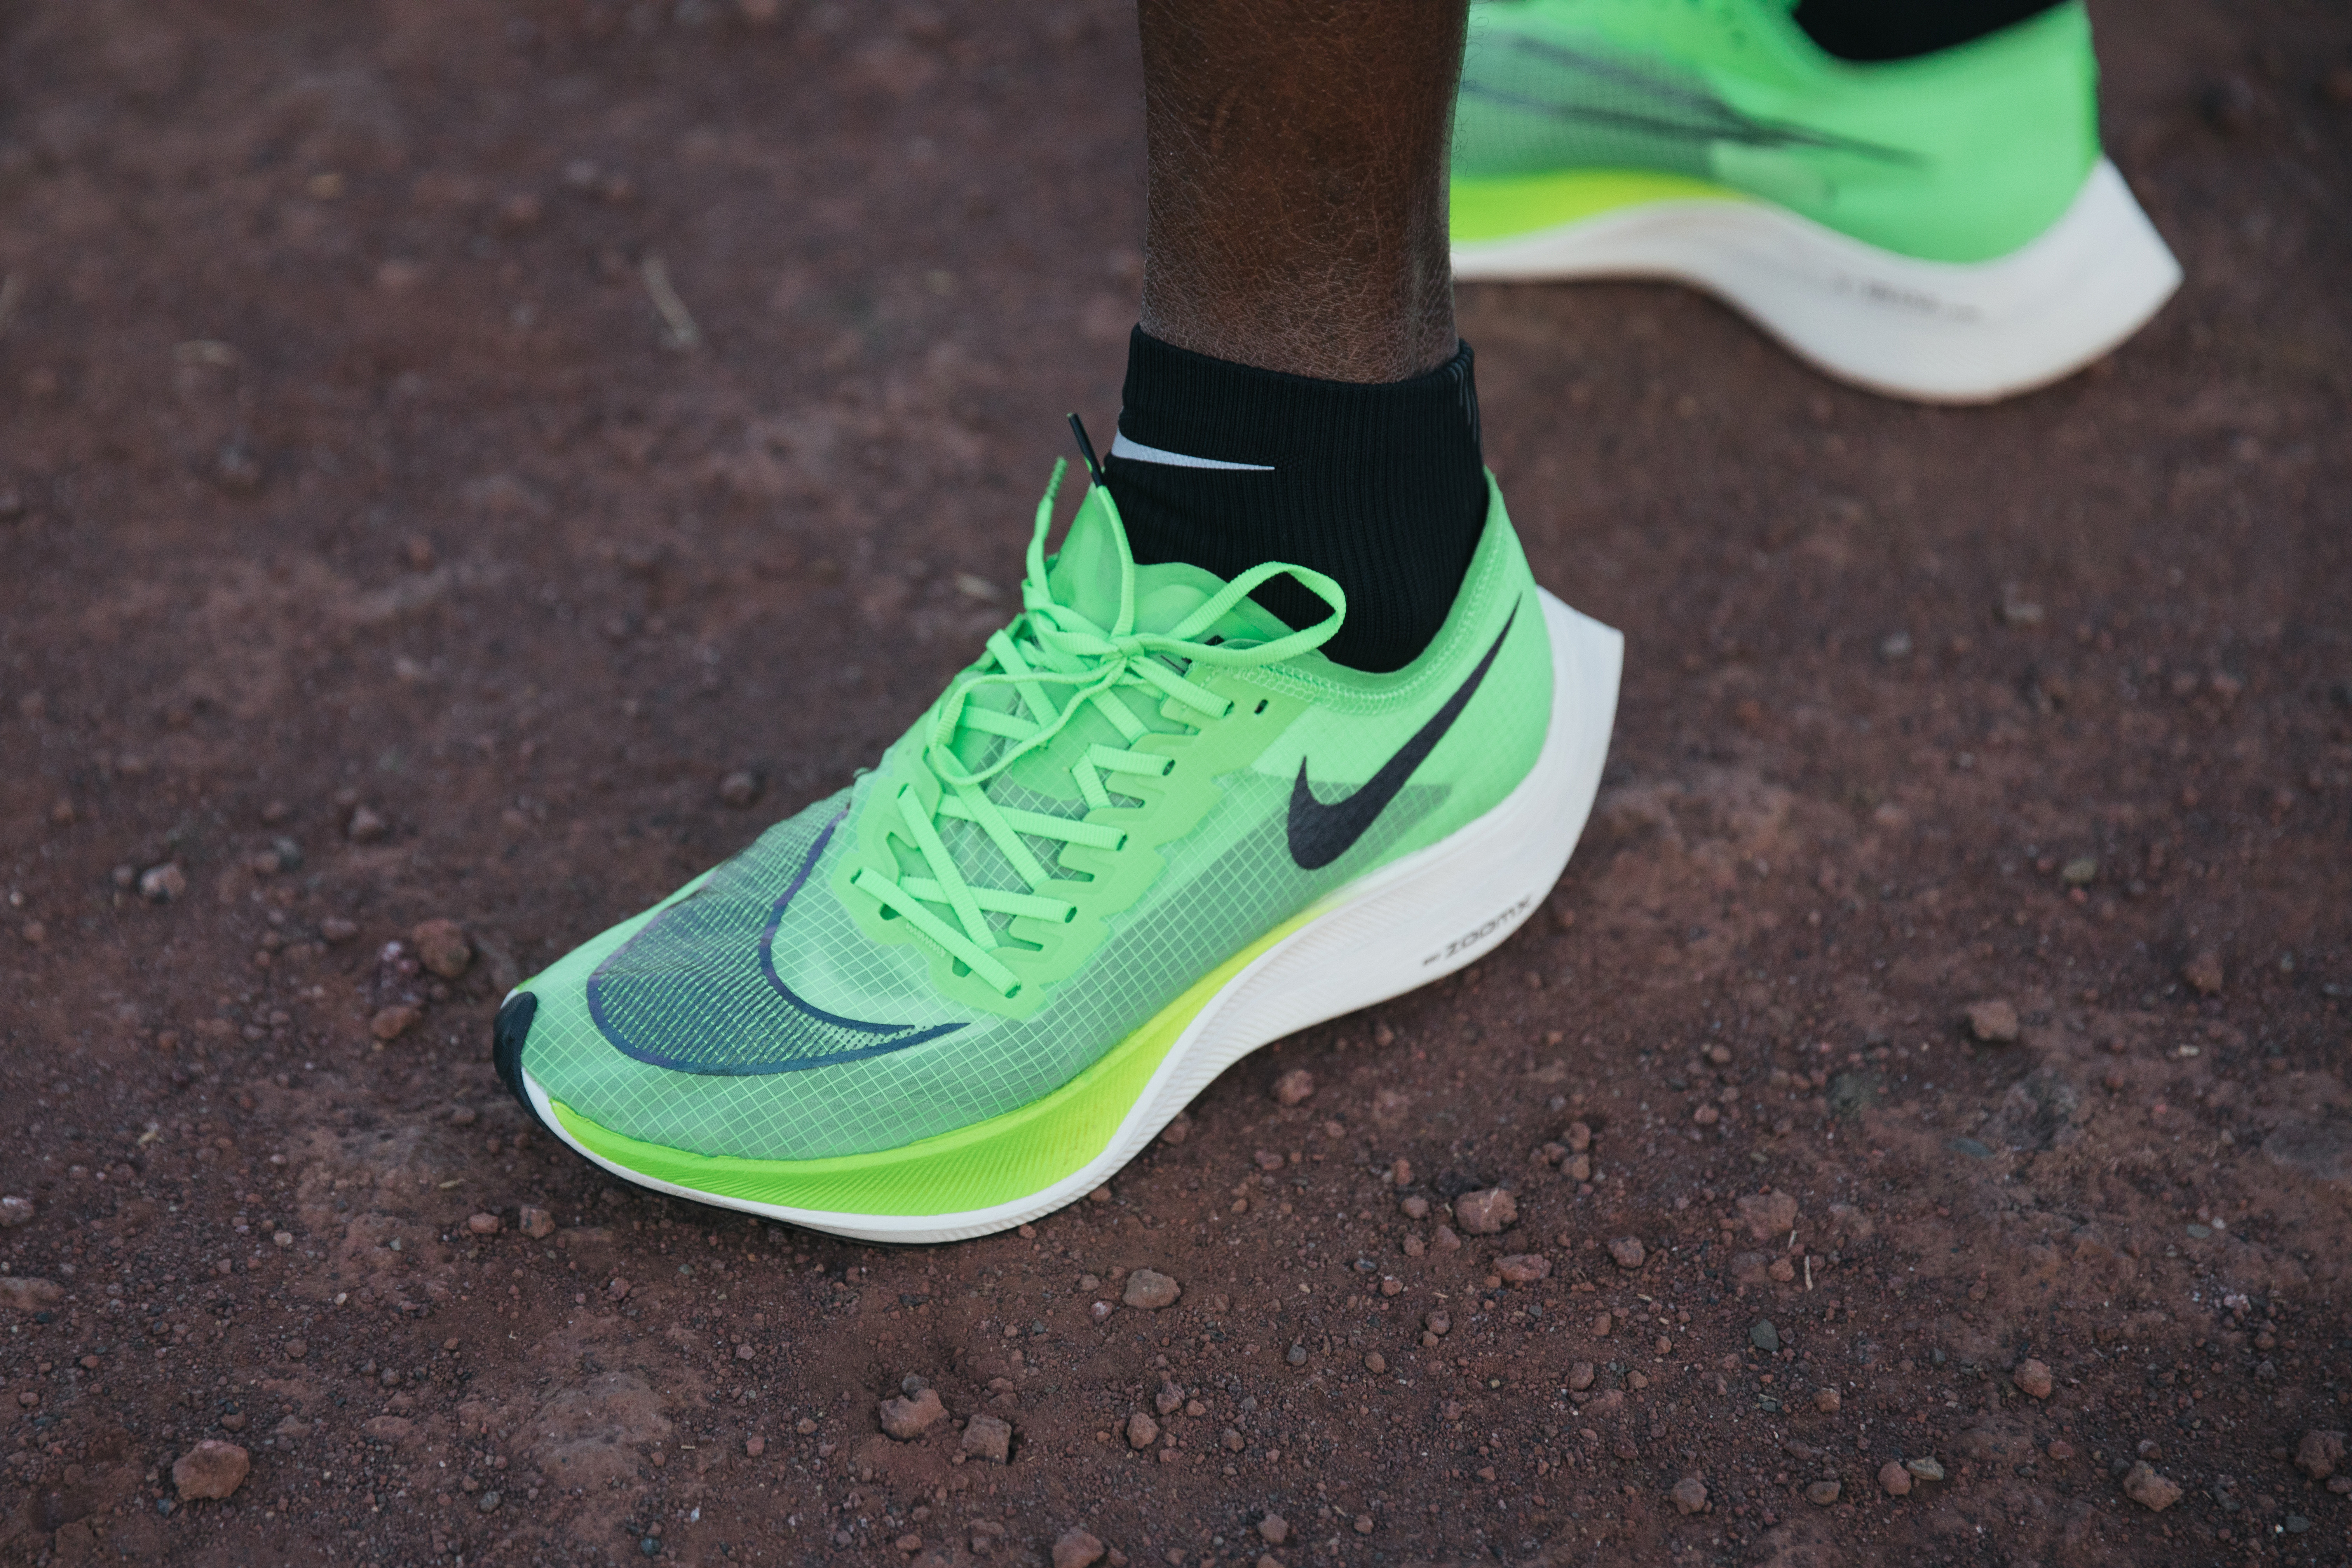 a1c1bde3fbeac Nike Unveils the New ZoomX Vaporfly NEXT% Running Shoes